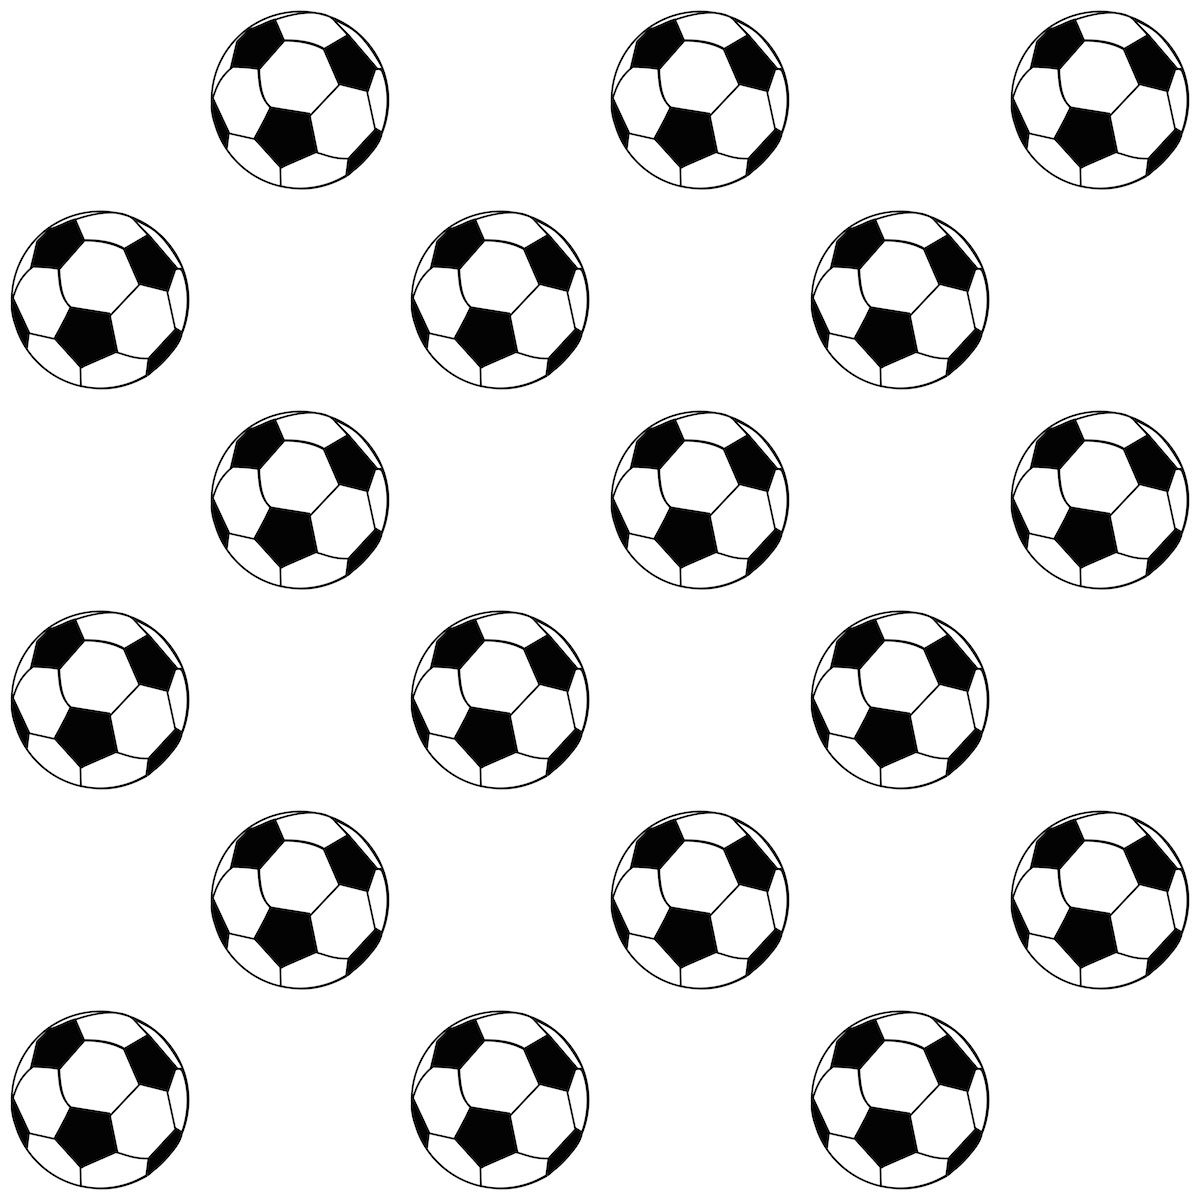 30 Images Of Free Football Template To Print | Bfegy - Free Printable Football Templates